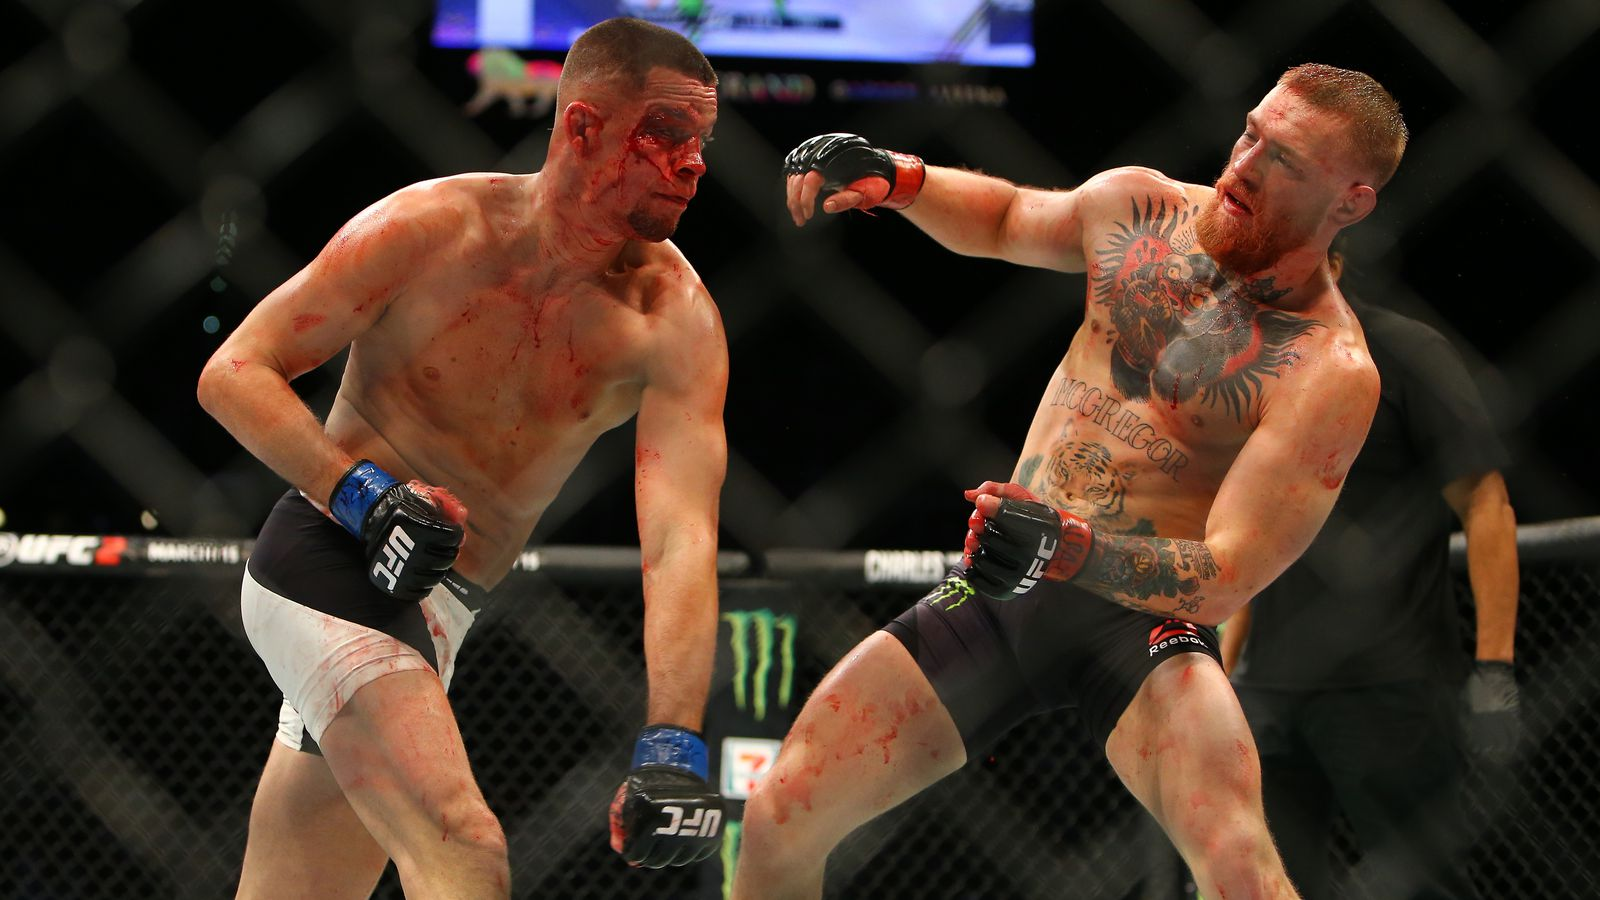 Nate Report: Diaz  Conor McGregor welterweight rematch vs